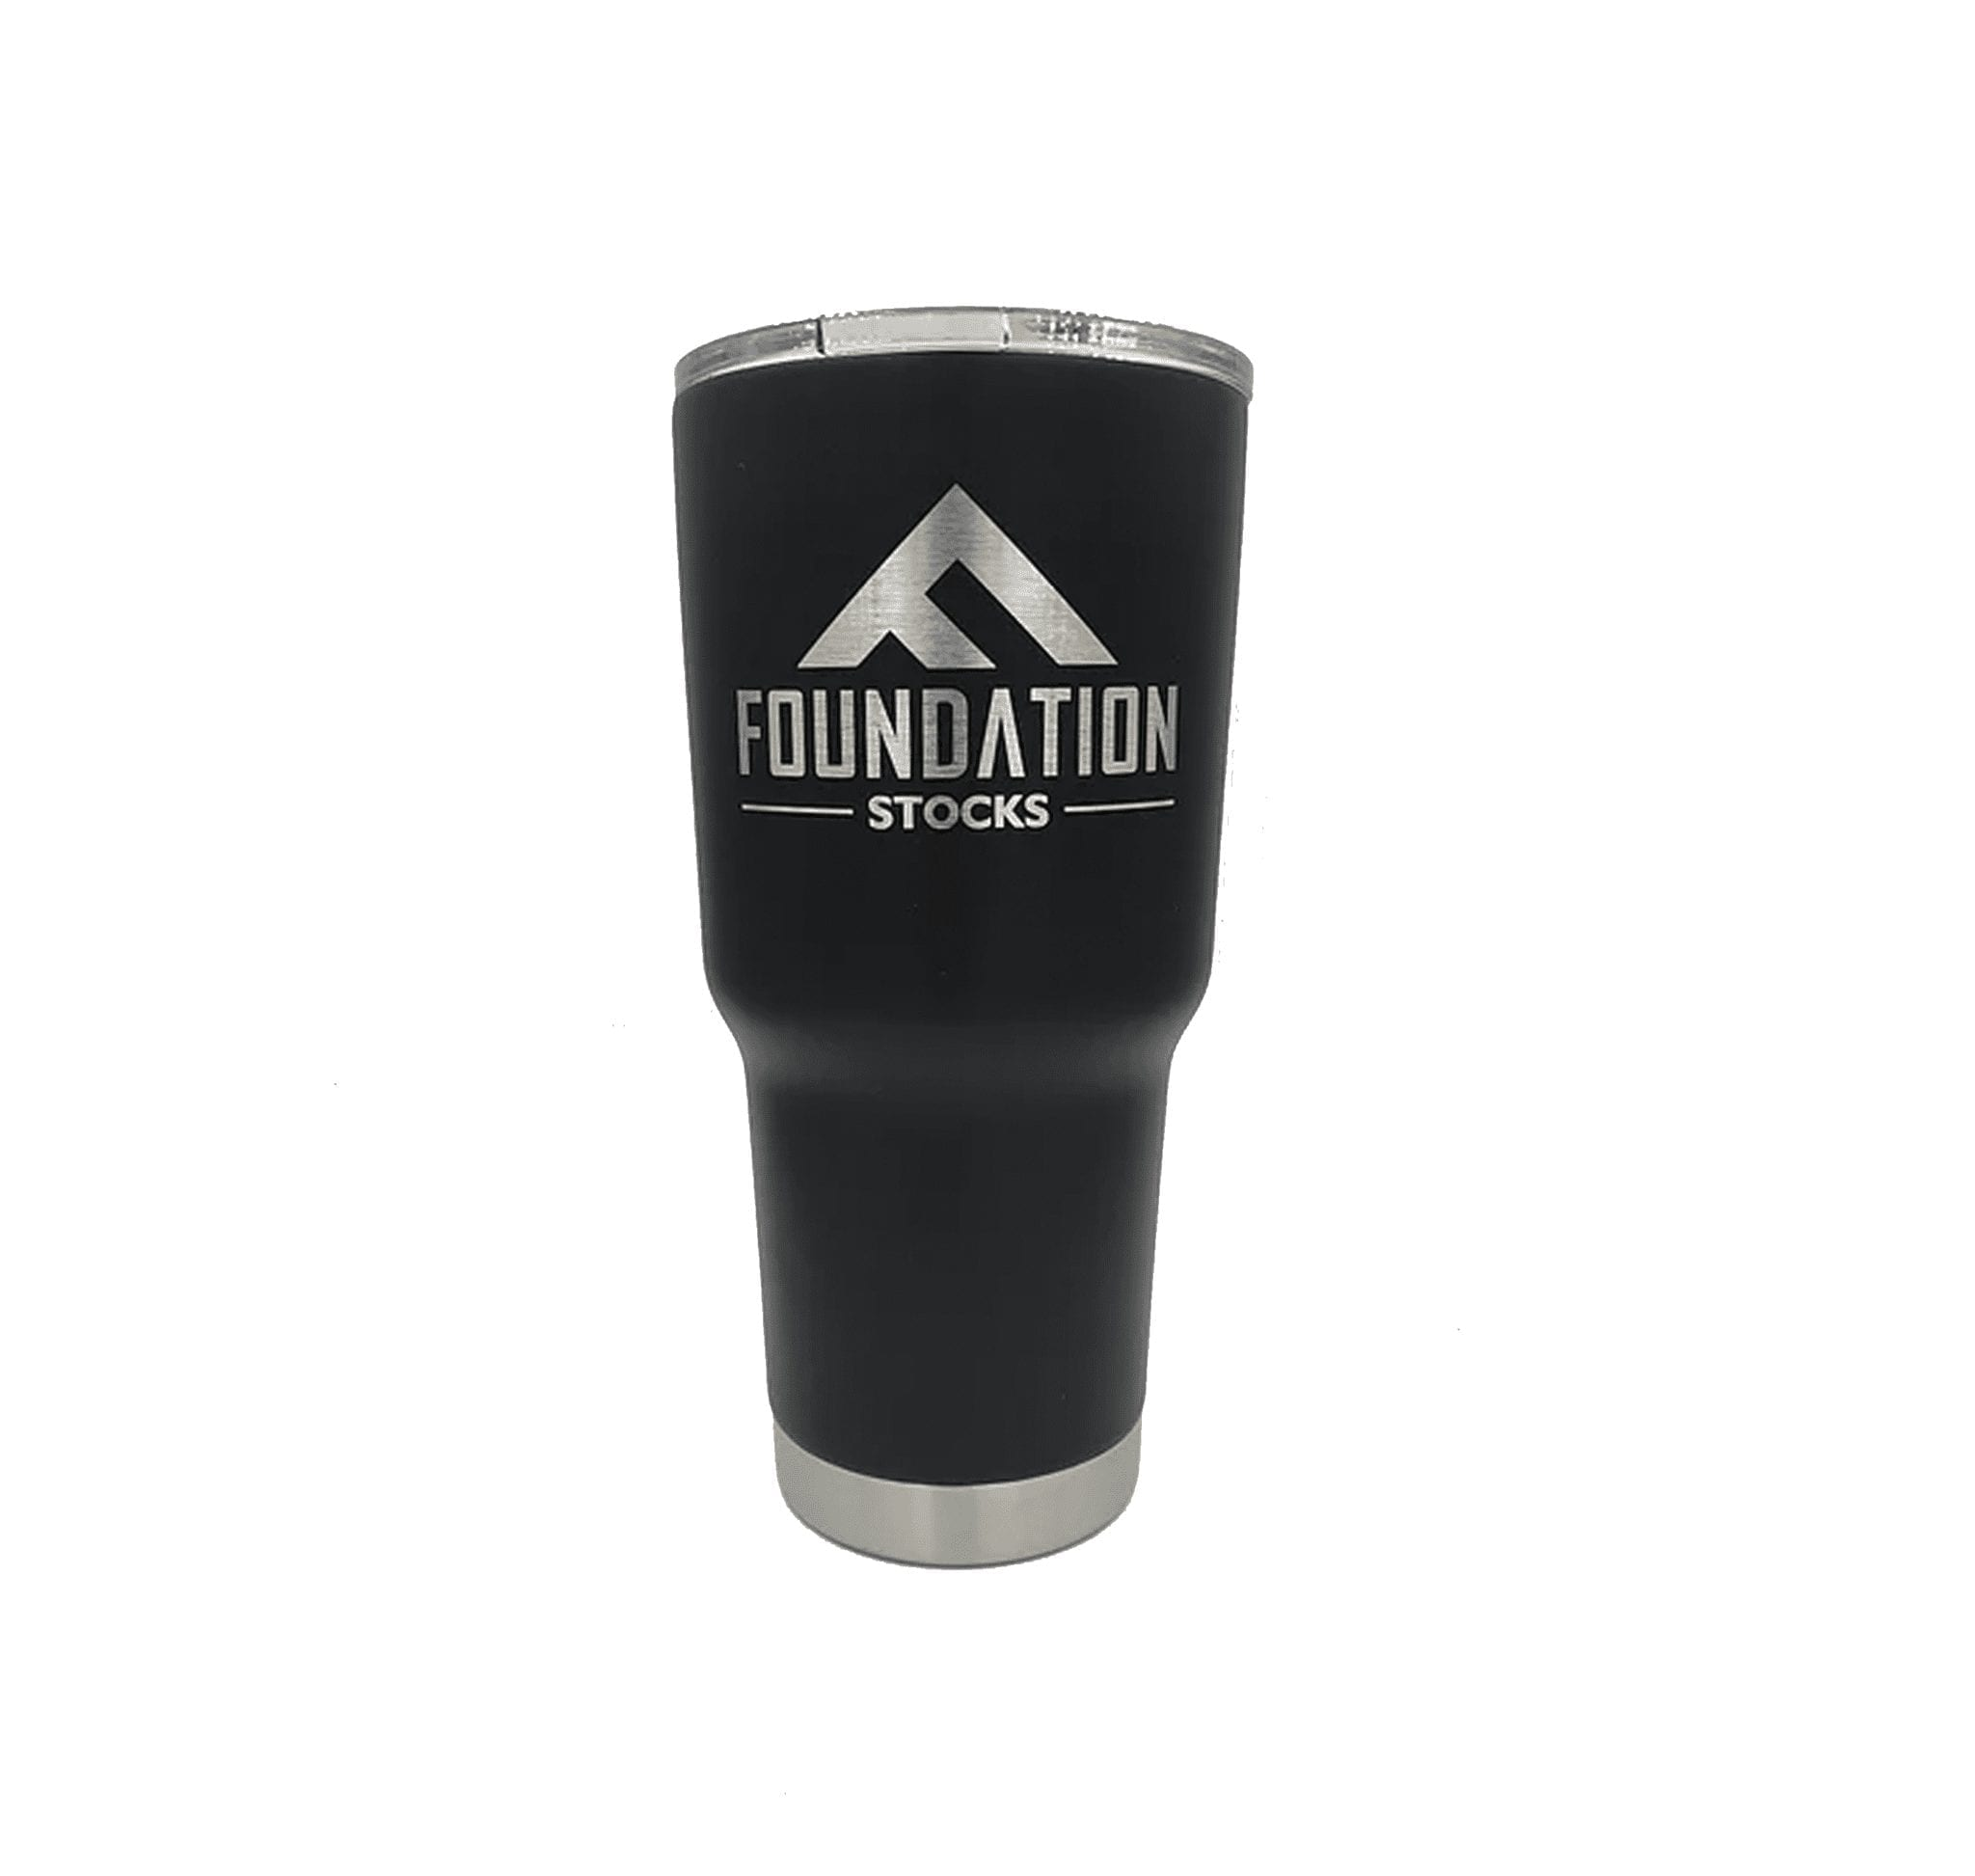 Foundation 30oz Stainless Steel Tumbler